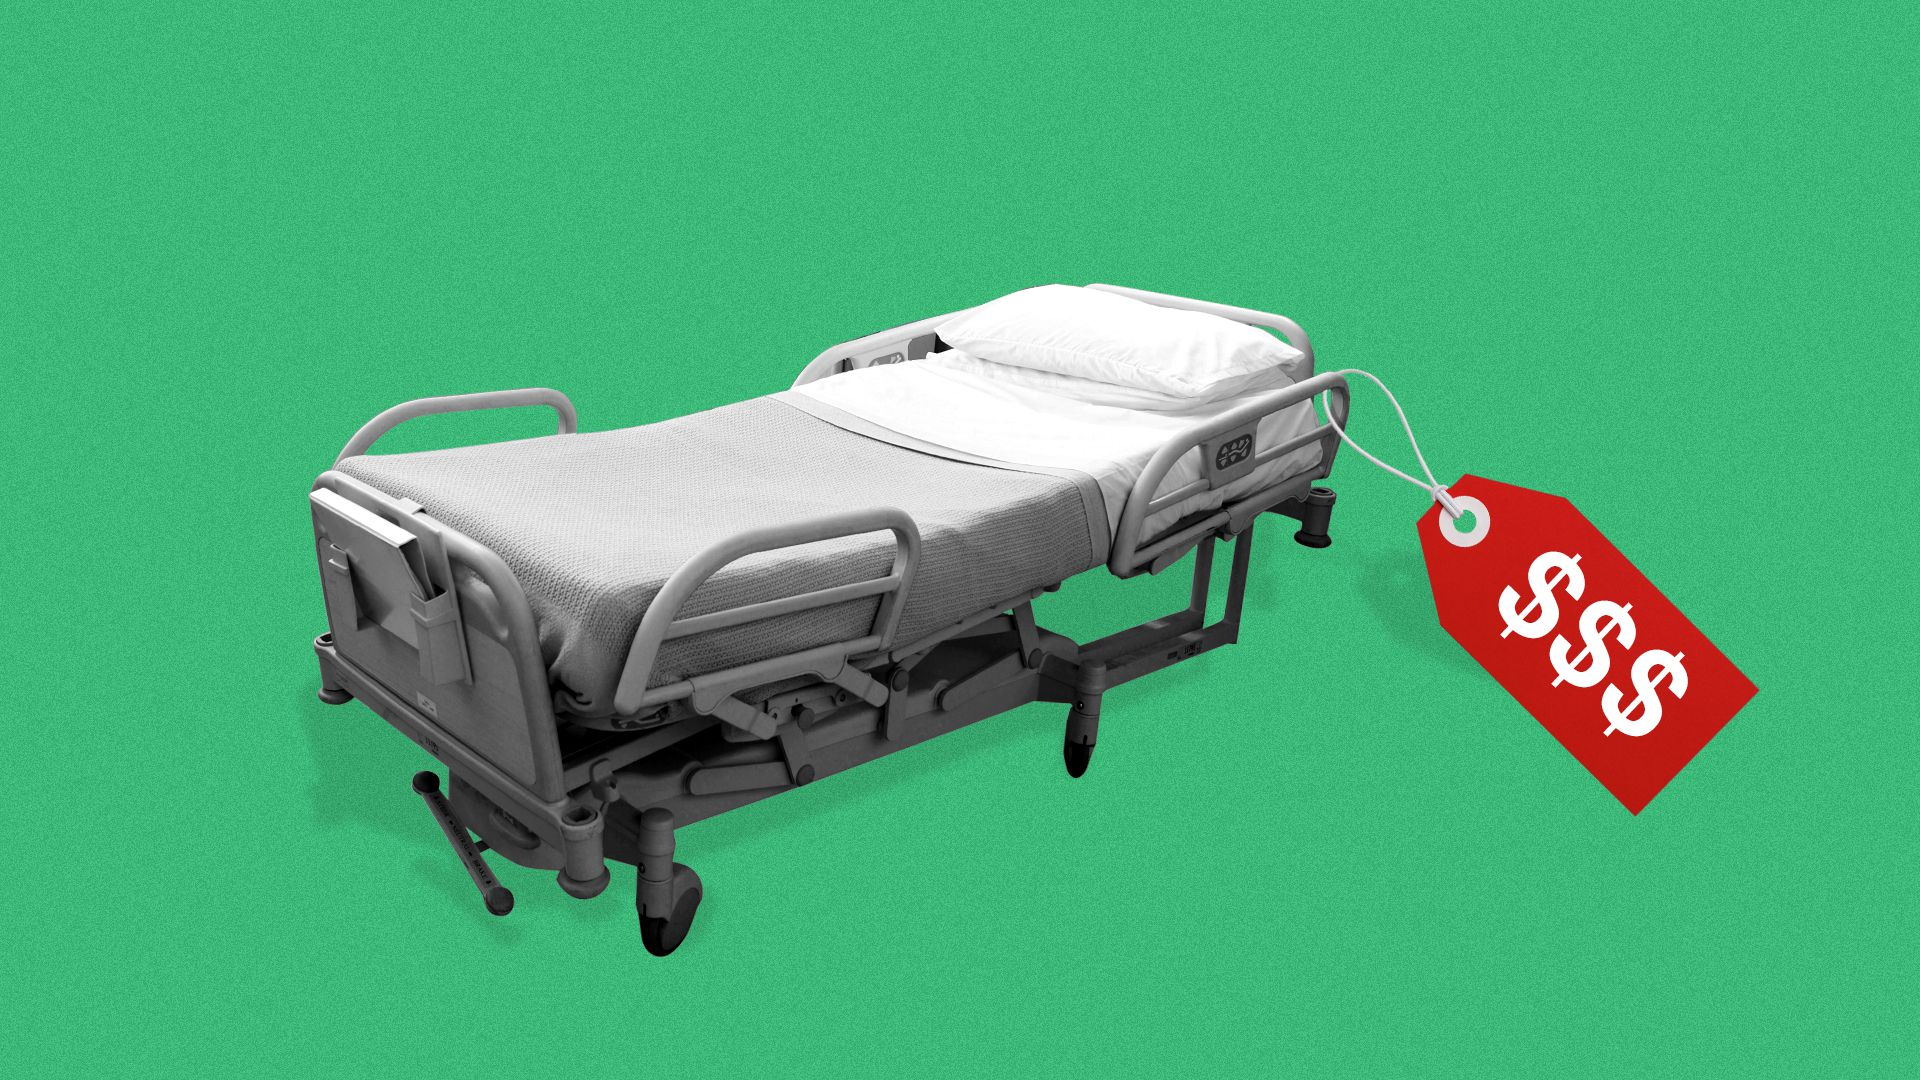 Illustration of a hospital bed with a price tag.